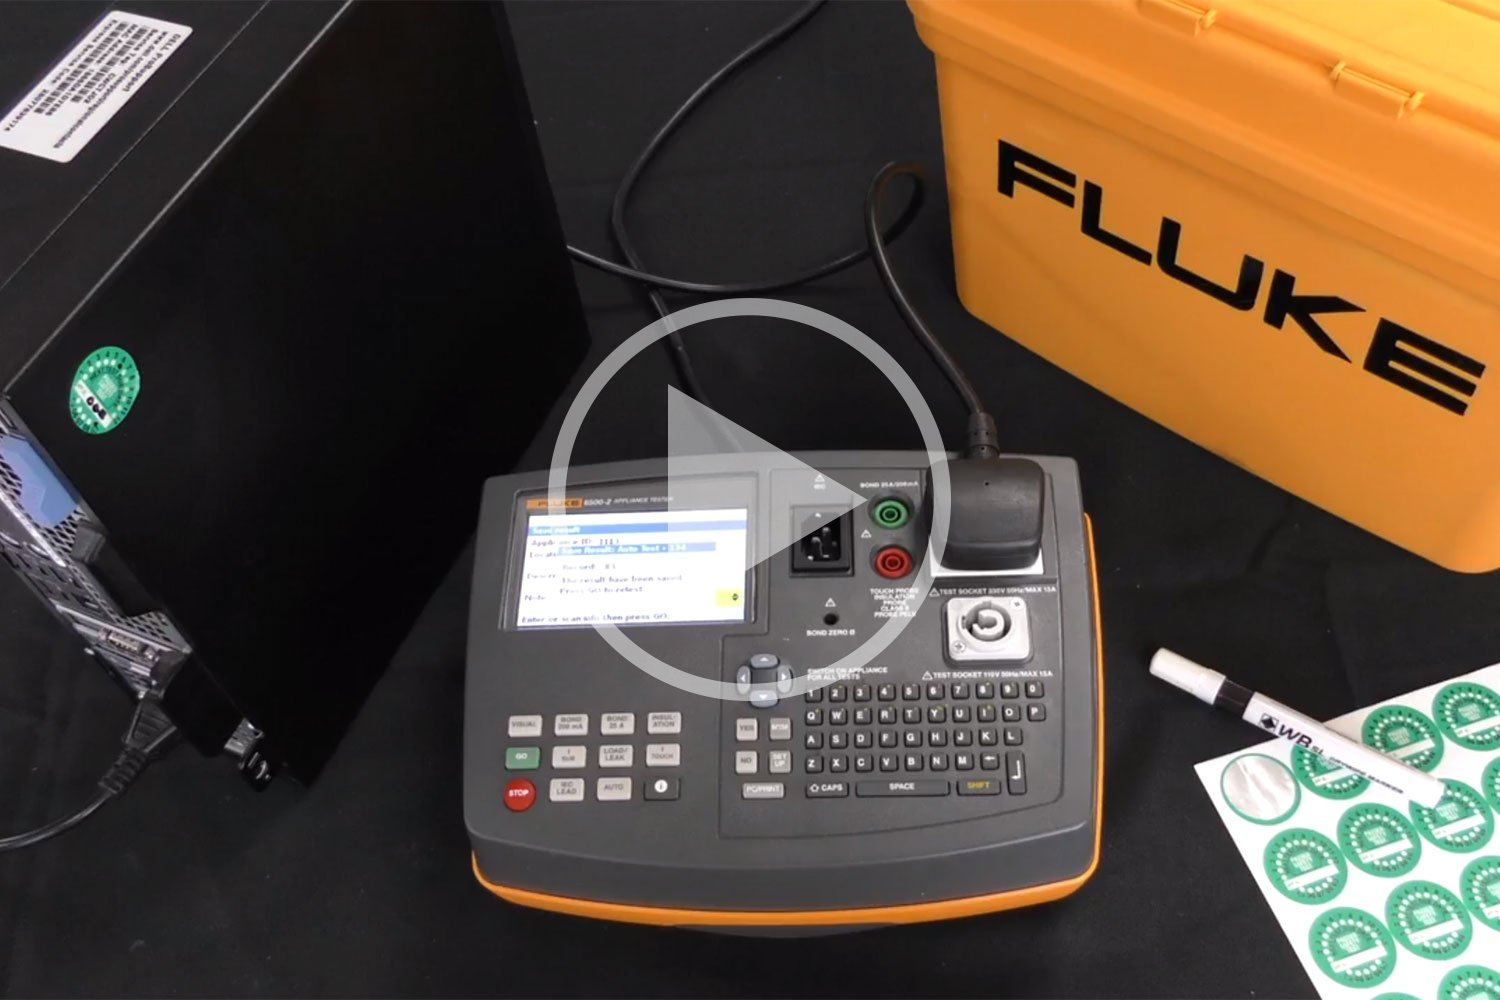 How to test an IT Equipment- Fluke 6500-2 PAT Tester: